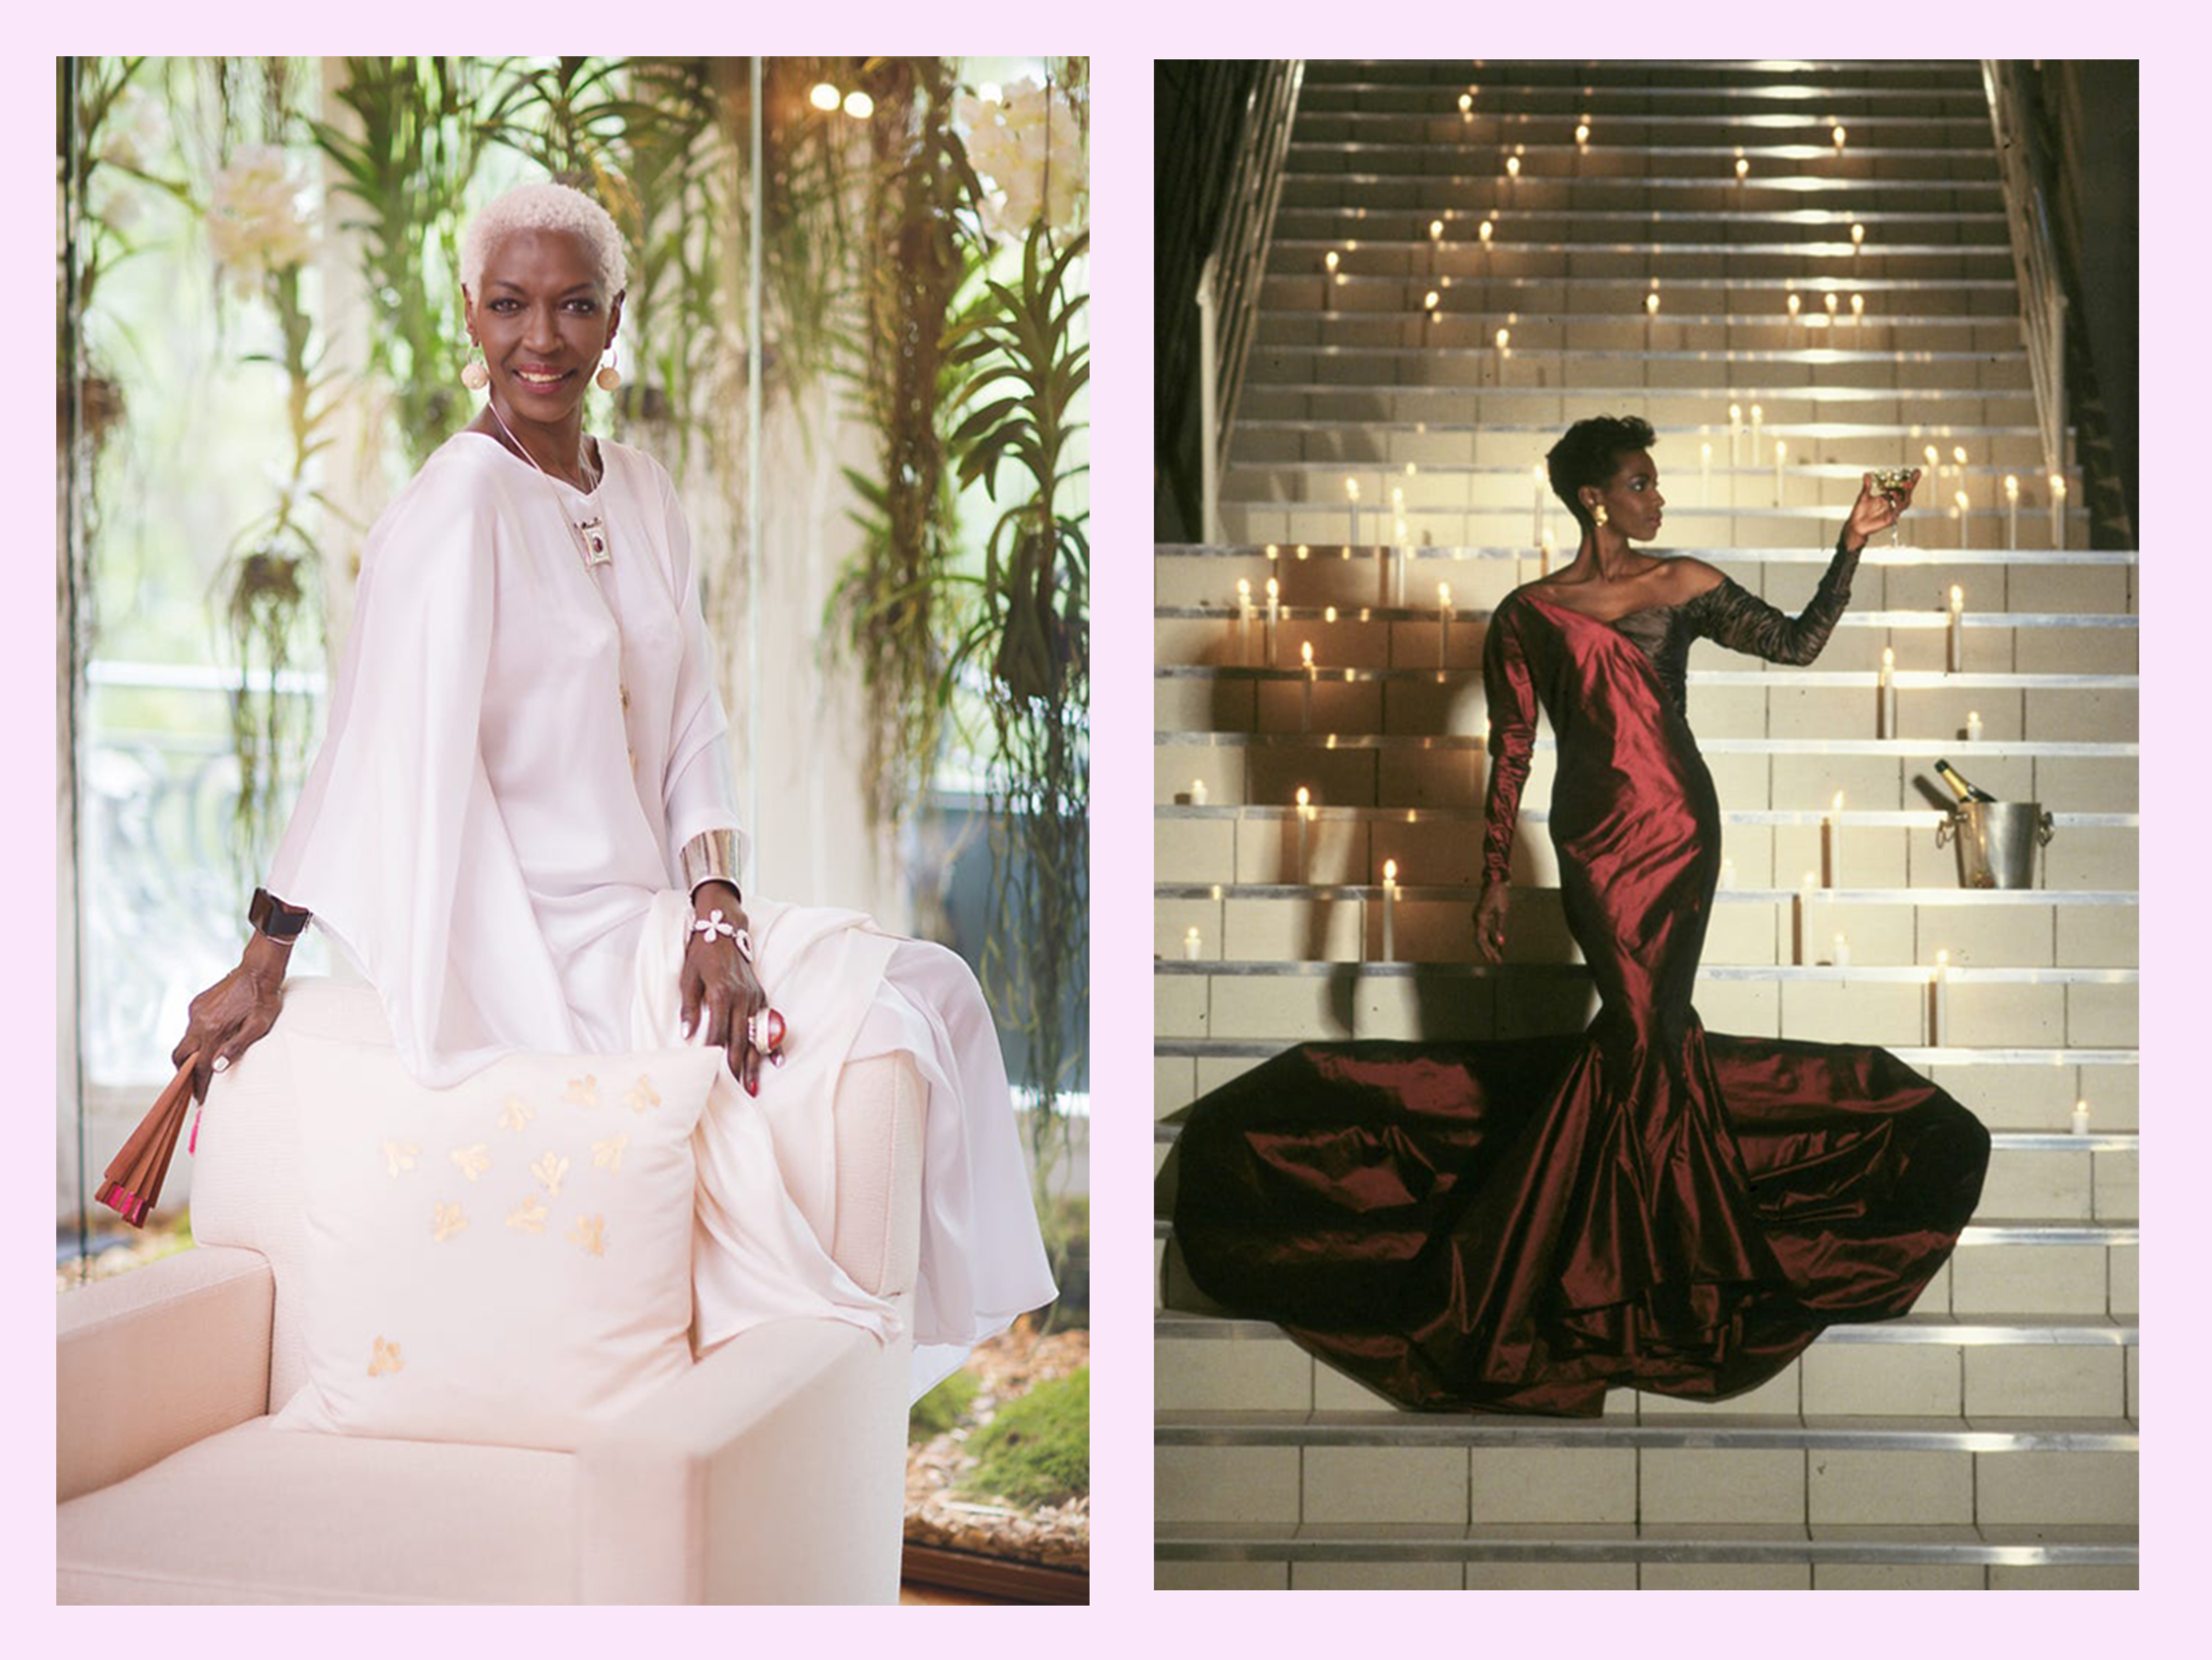 Burundians in the Diaspora: The wonderful story of Esther KAMATARI, the Burundian Princess who became the first Black model in France!